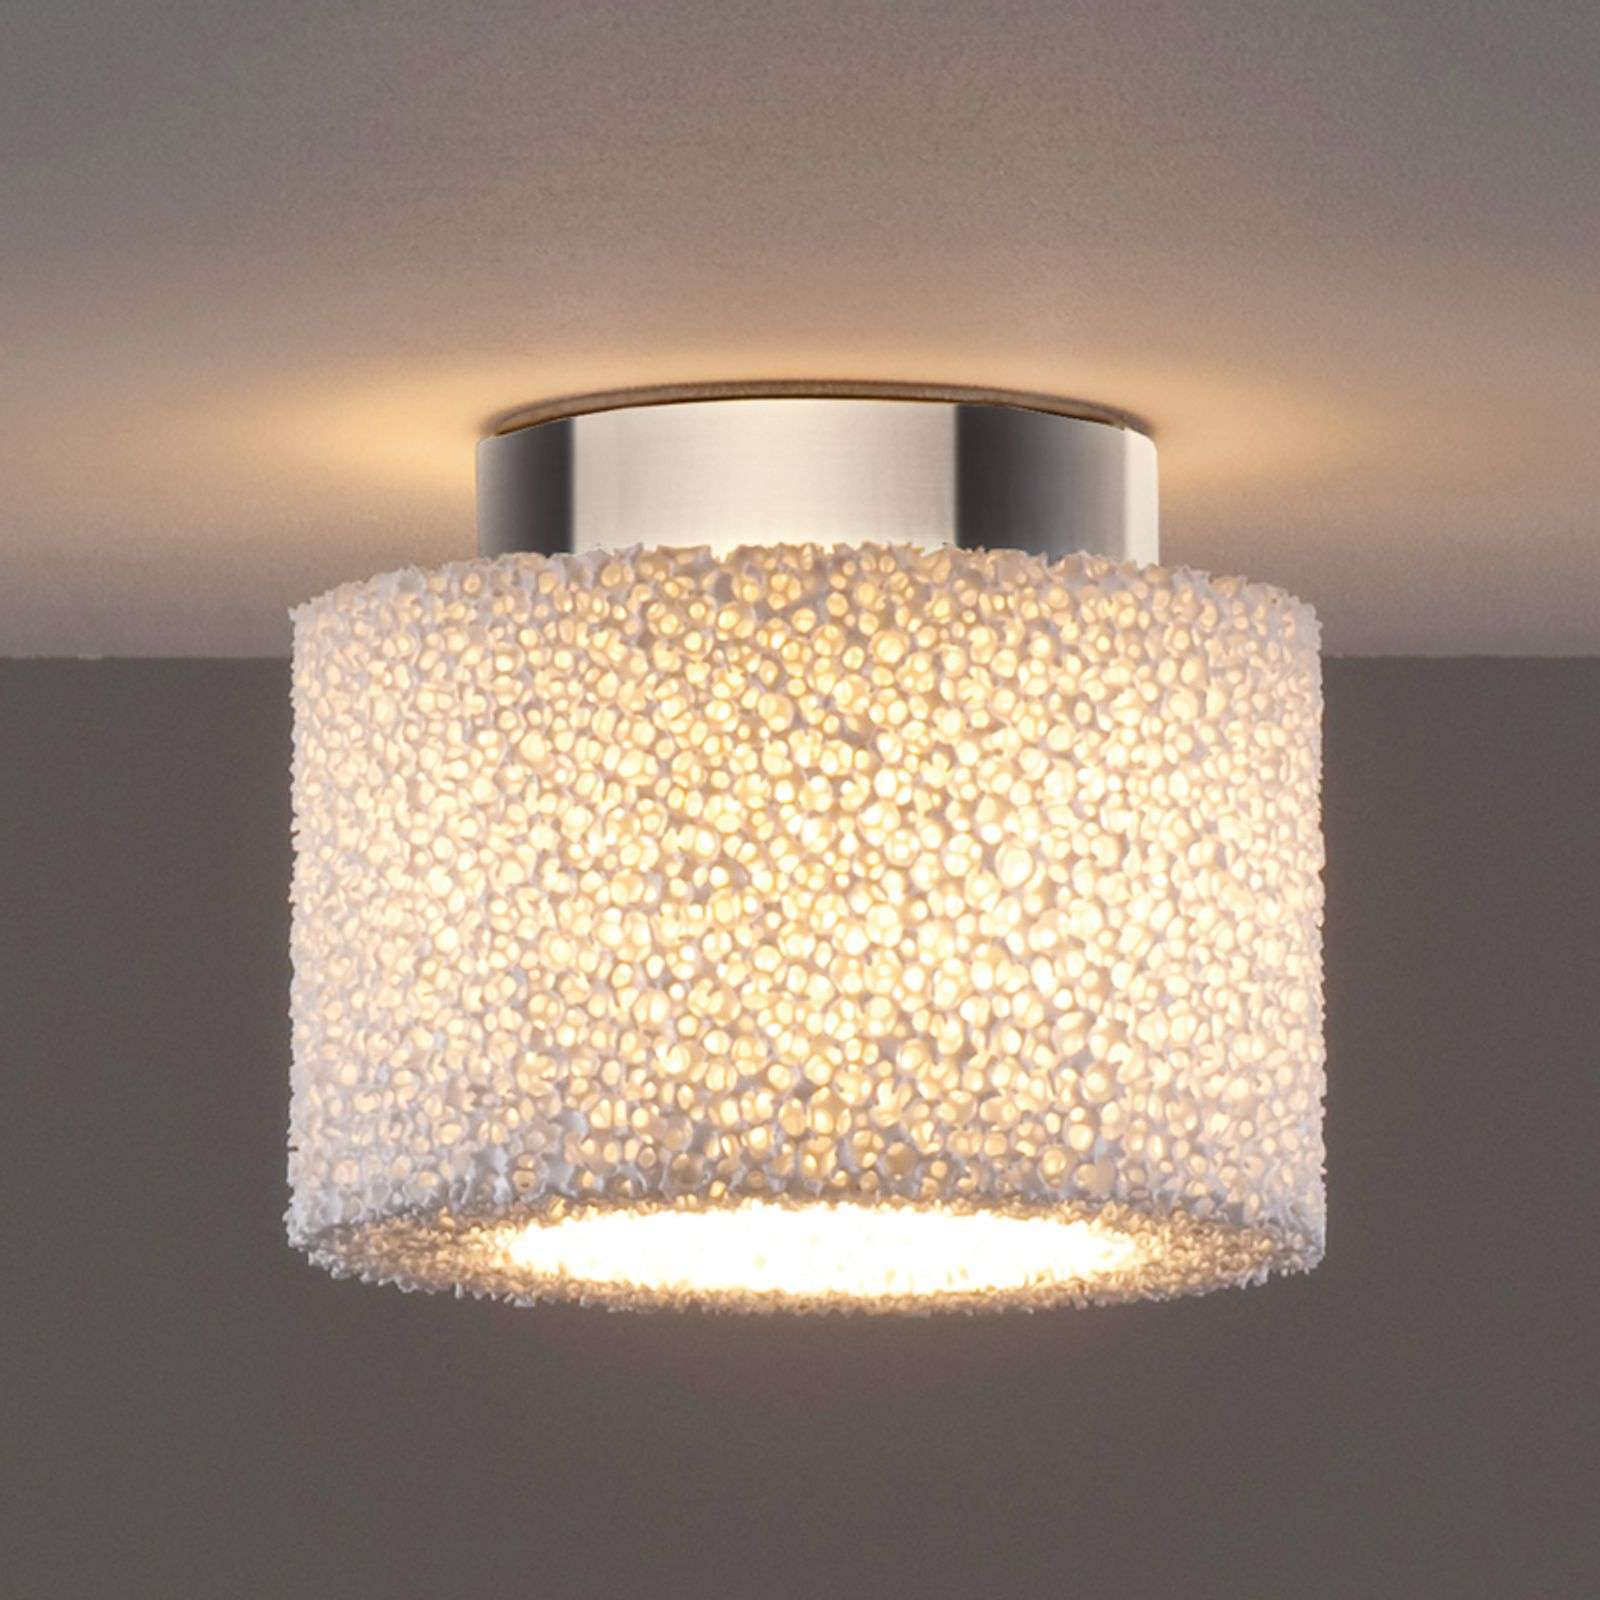 Plafonnier LED Reef en mousse céramique